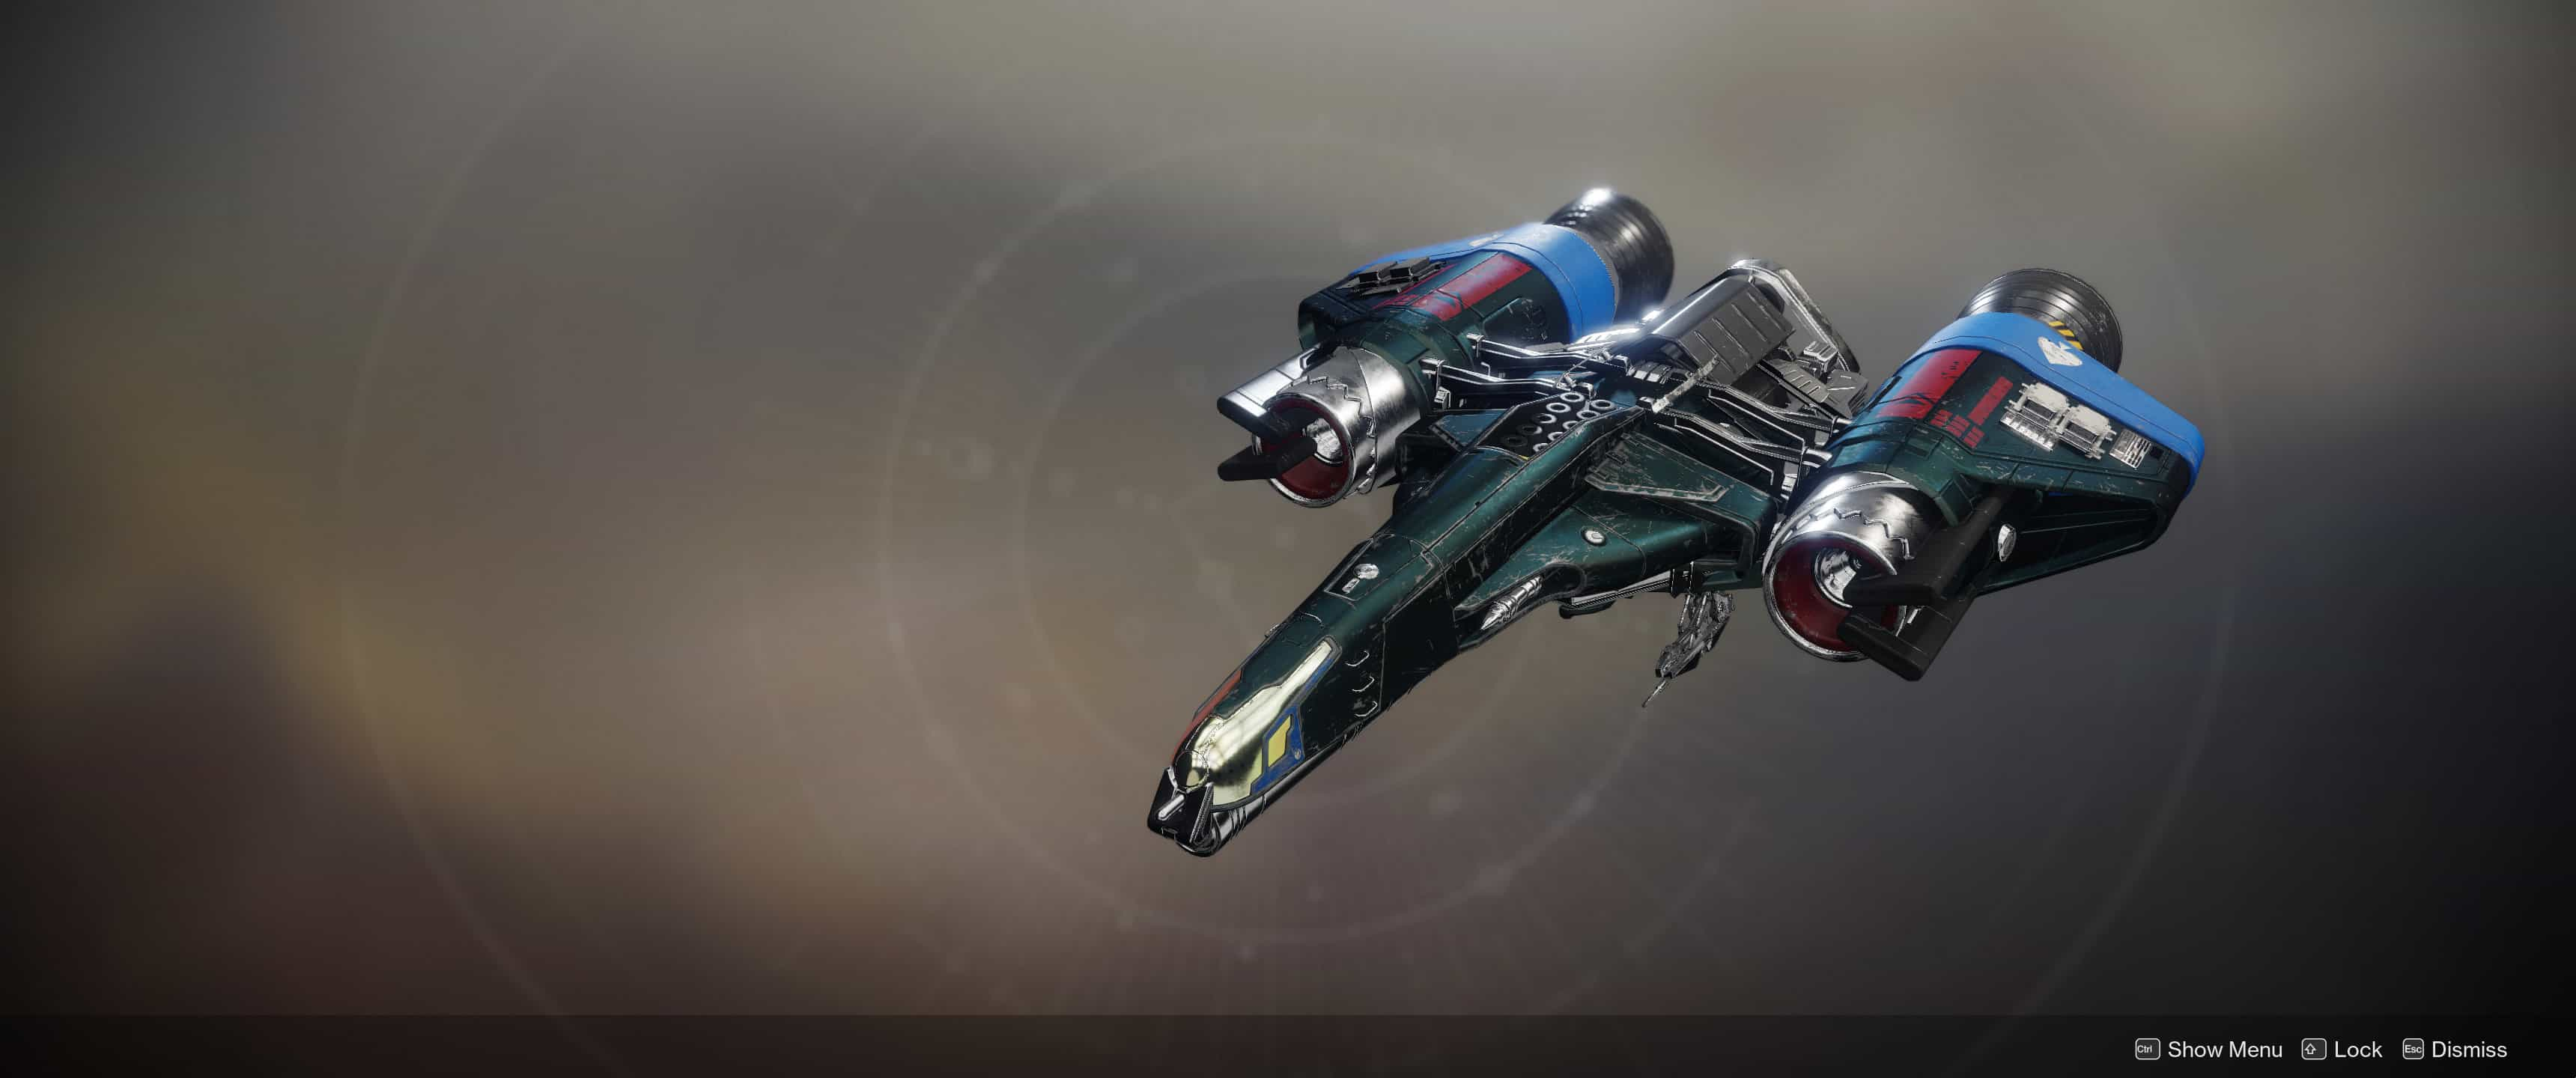 How to Get the Queen of Hearts, Cayde's Exotic Ship in Destiny 2